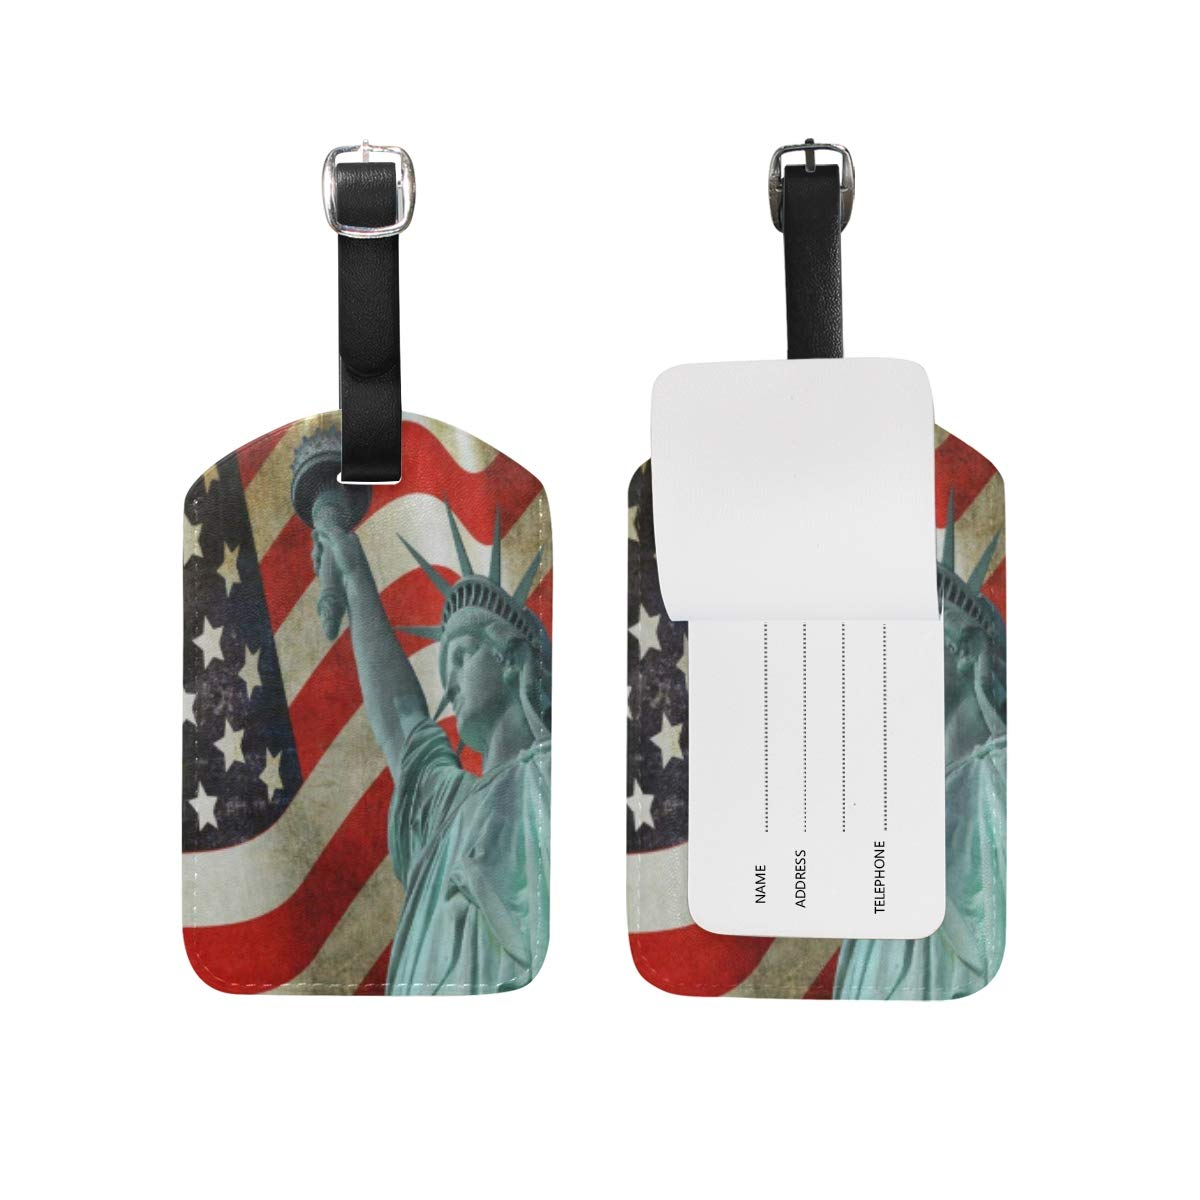 Statue Of Liberty Travel Tags For Travel Tags Accessories 2 Pack Luggage Tags